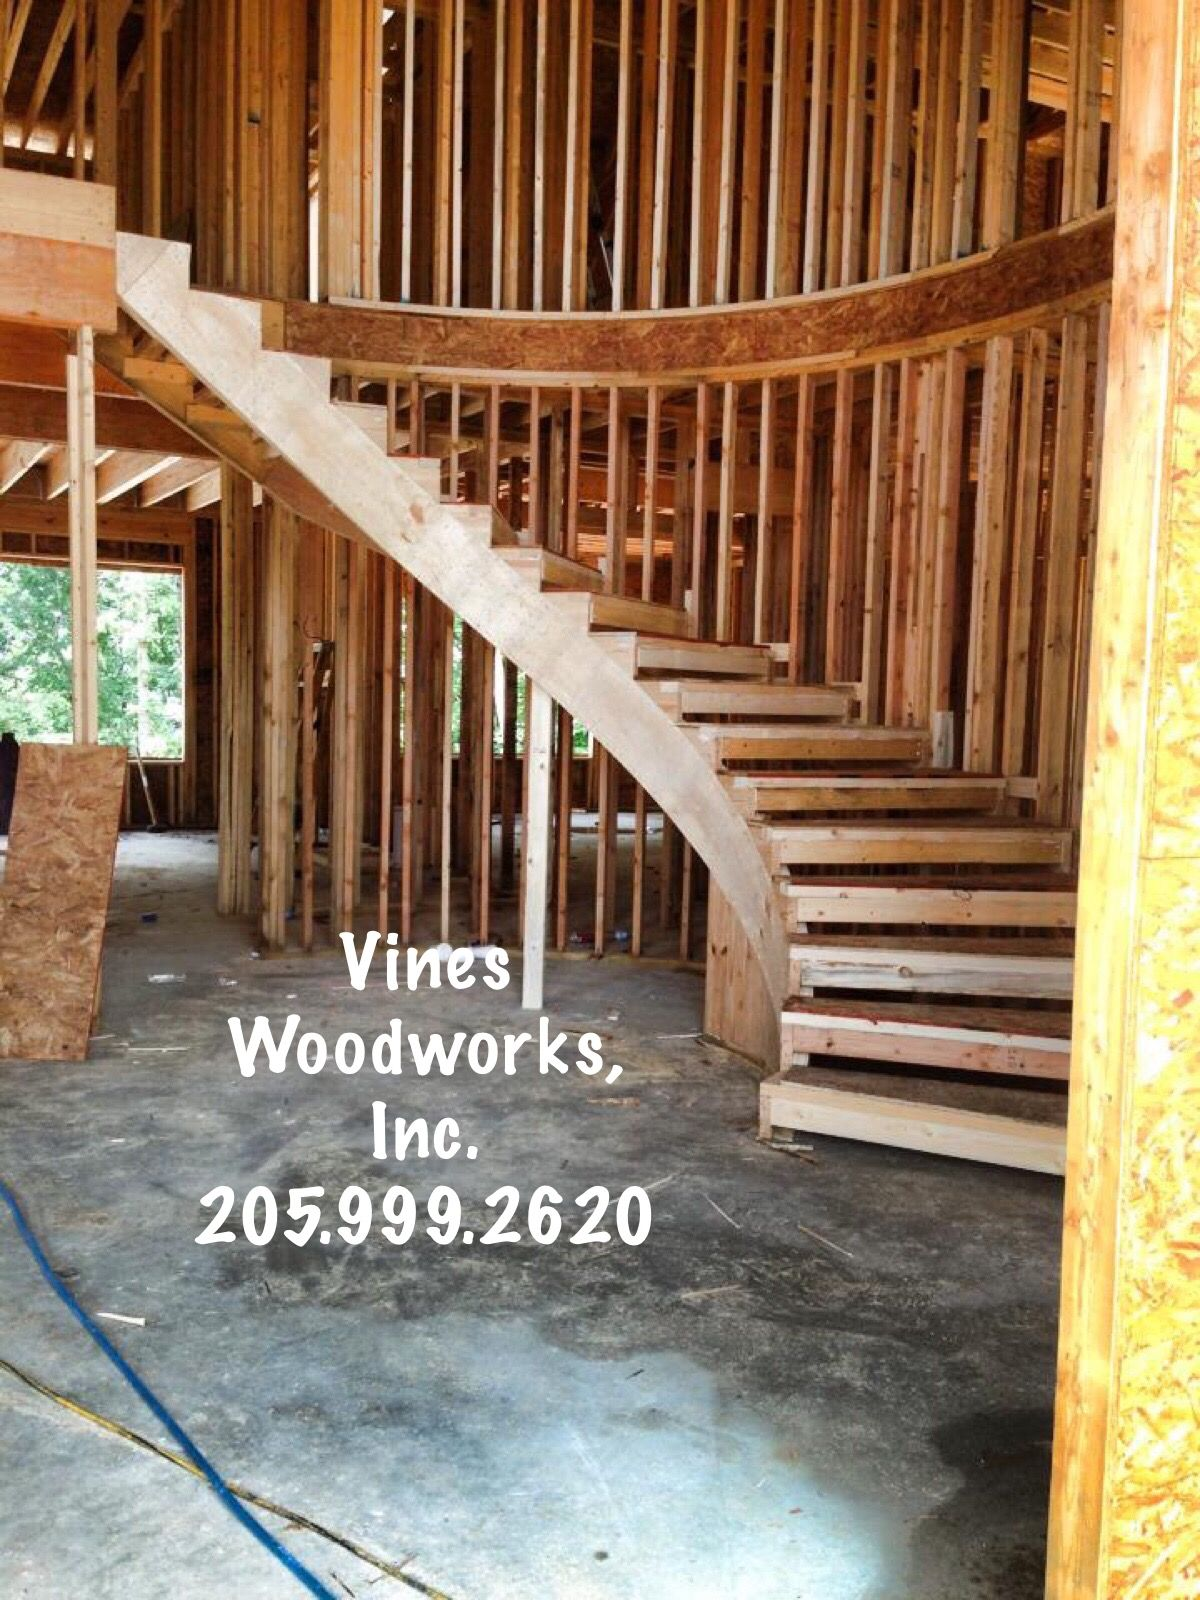 Vines Woodworks, Inc. Is A Turn Key Custom Stair Builder. We Specialize